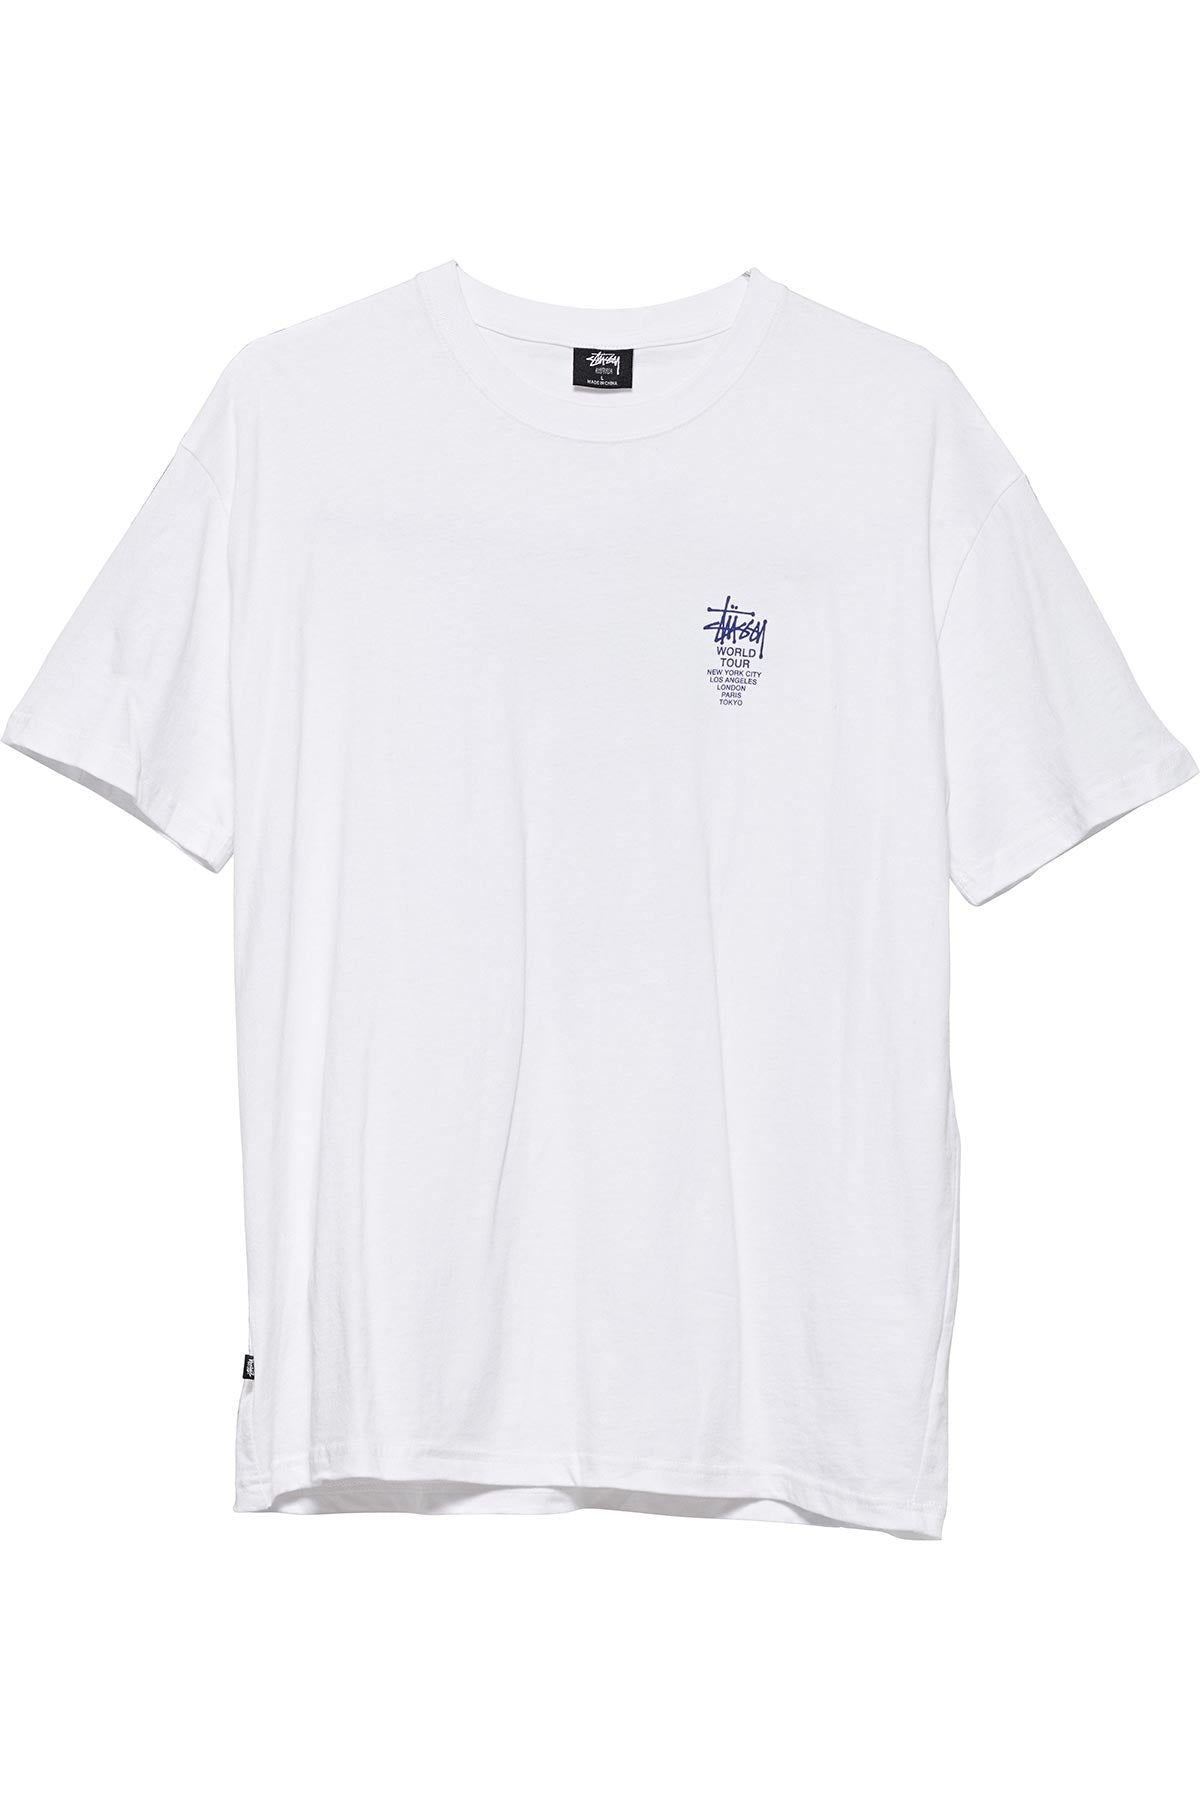 World Tour Cities SS Tee - R8gzwear